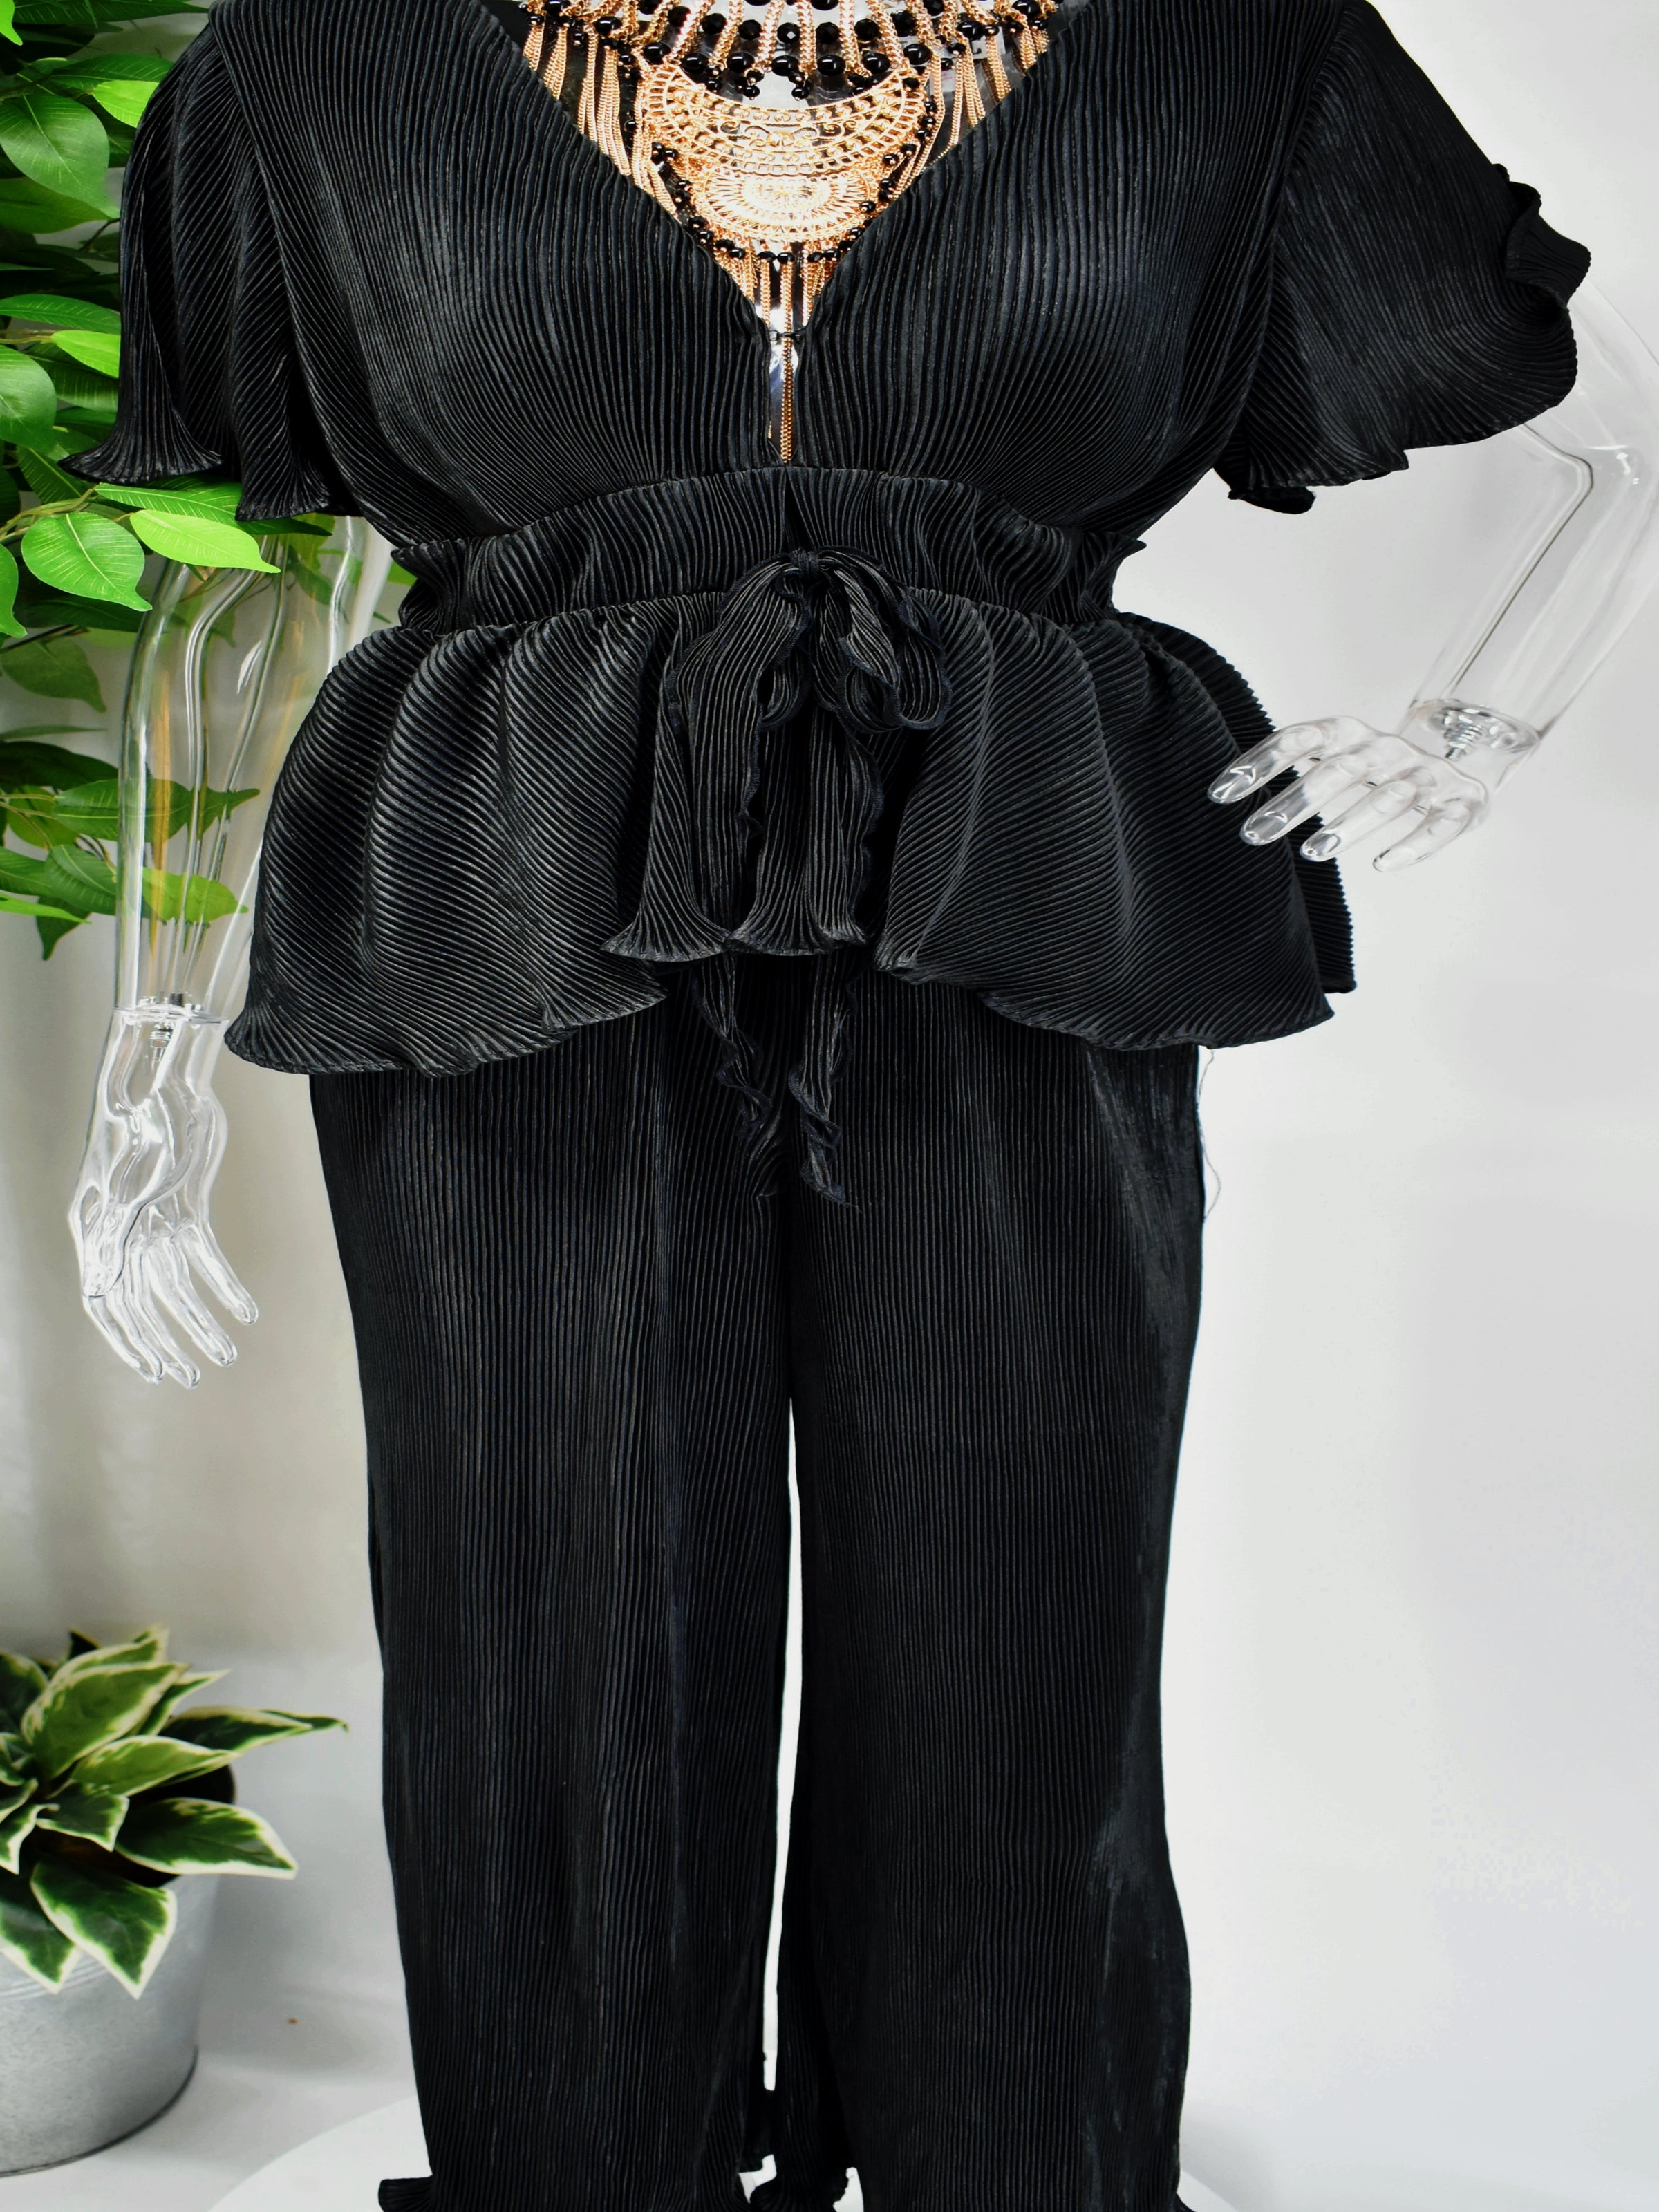 Give a nod to your impeccable taste while you slip on our sensational Bianka Jumpsuit. Our Black Bianka Pants Jumpsuit has a v neckline and short sleeves. The peplum bodice can become as cinched as you would like it with its tied waist.